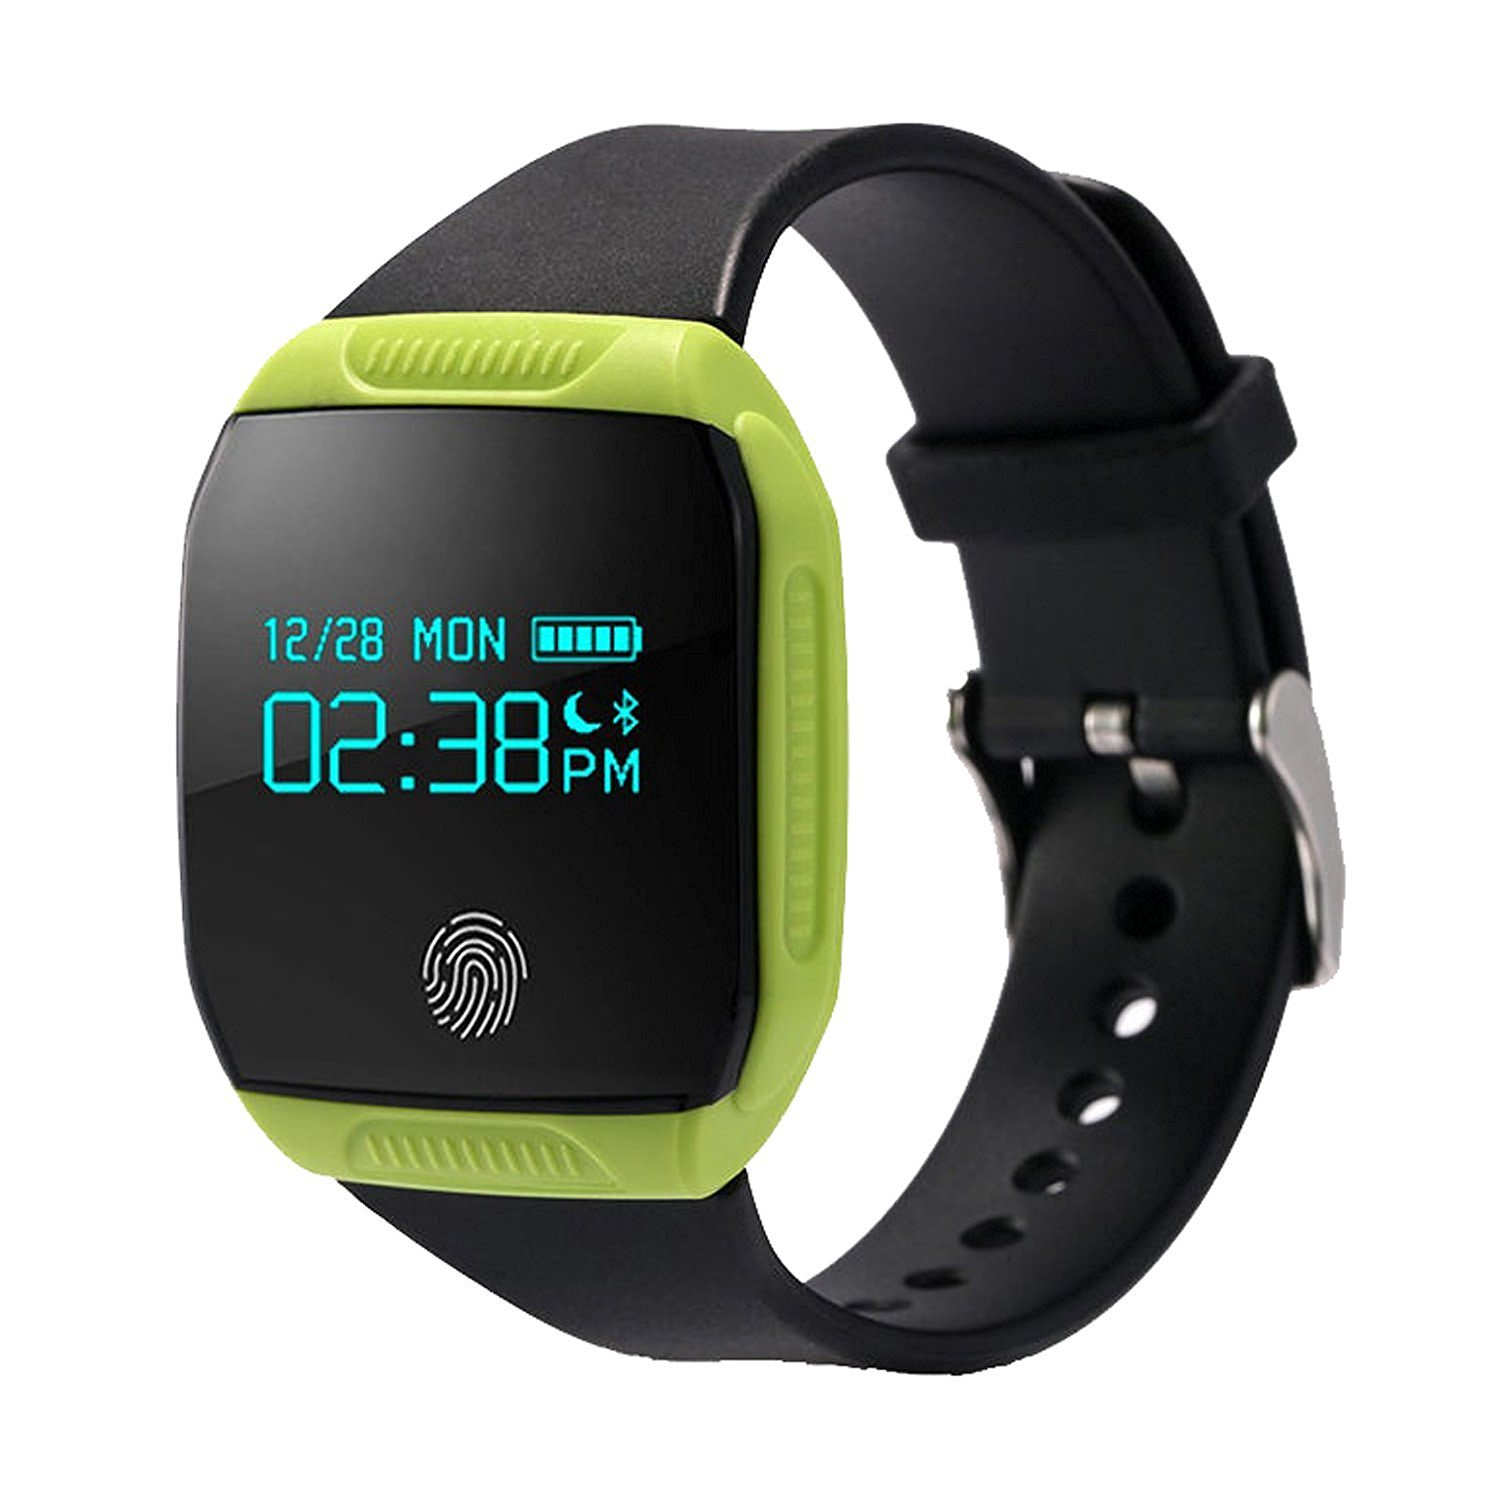 personal you watch activity waterproof fitness monitor rate pedometer watches blood heart pin touch screen kingkok tracker pressure